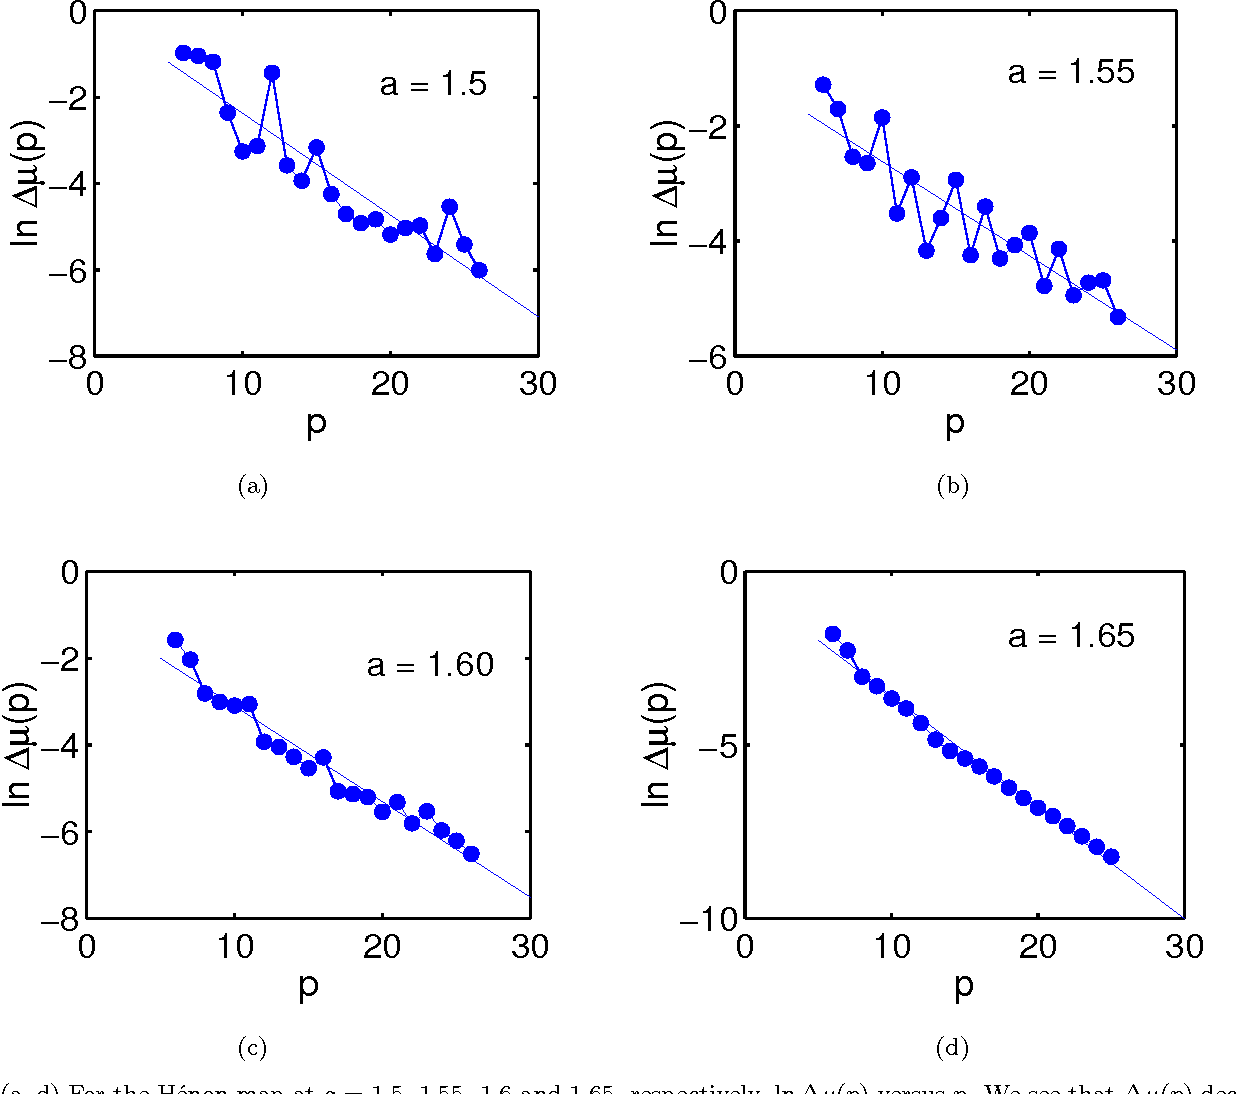 Fig. 5. (a–d) For the Hénon map at a = 1.5, 1.55, 1.6 and 1.65, respectively, ln ∆µ(p) versus p. We see that ∆µ(p) decreases exponentially as p increases, indicating the applicability of Eq. (9) for large periods.